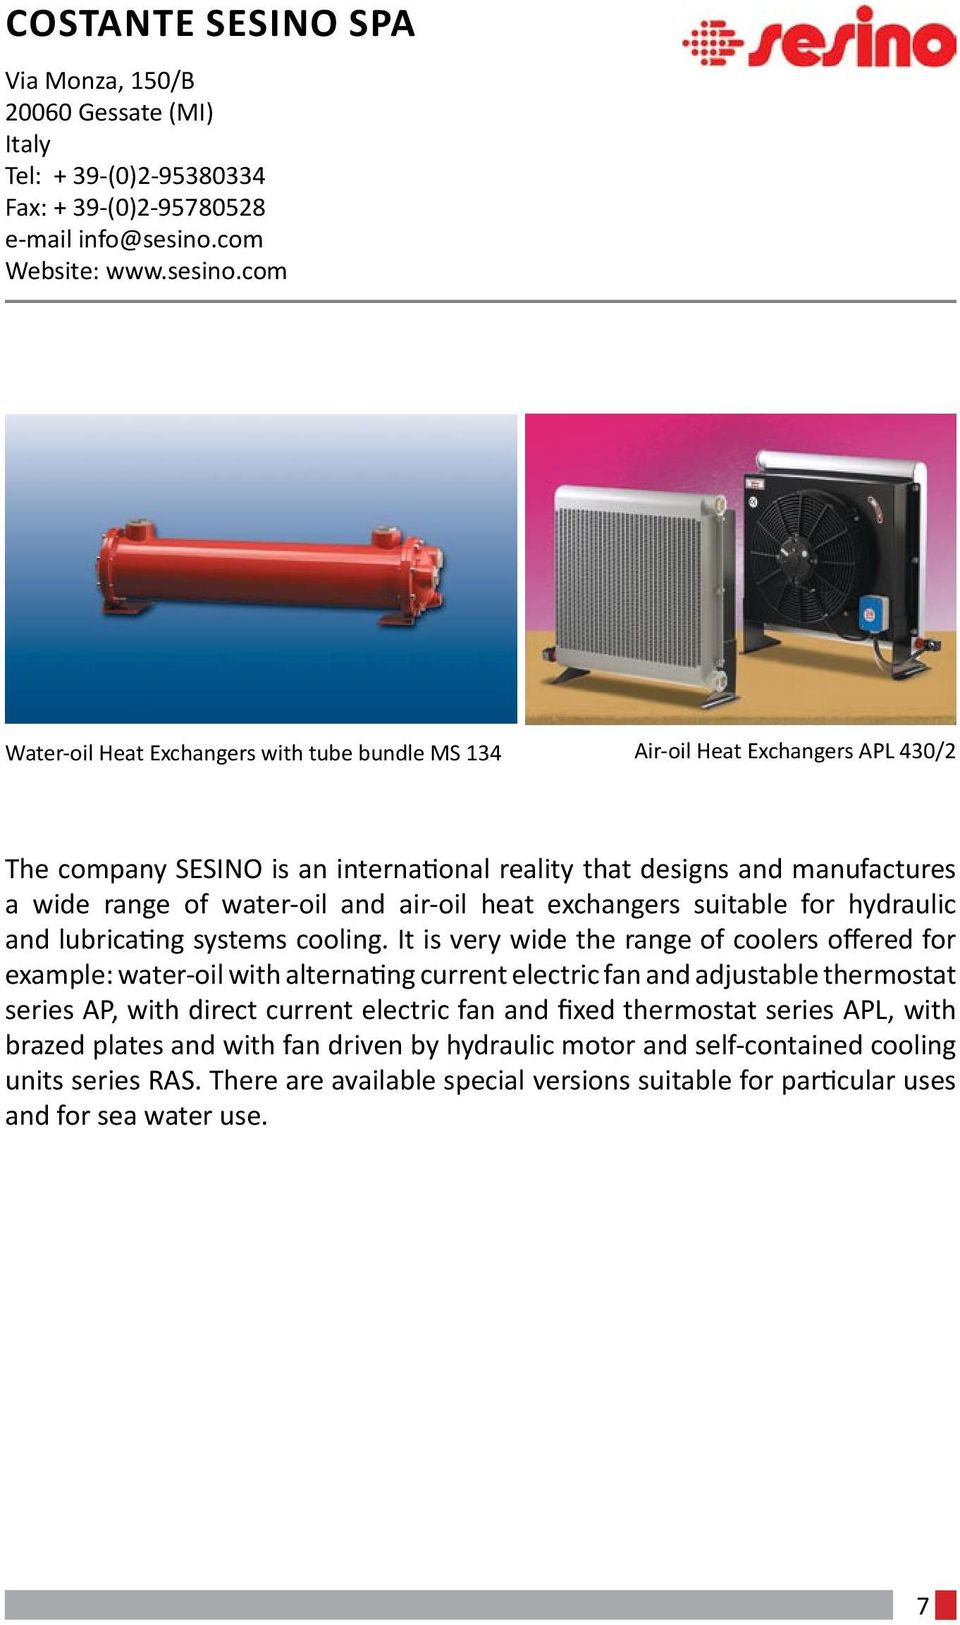 com Water-oil Heat Exchangers with tube bundle MS 134 Air-oil Heat Exchangers APL 430/2 The company SESINO is an international reality that designs and manufactures a wide range of water-oil and